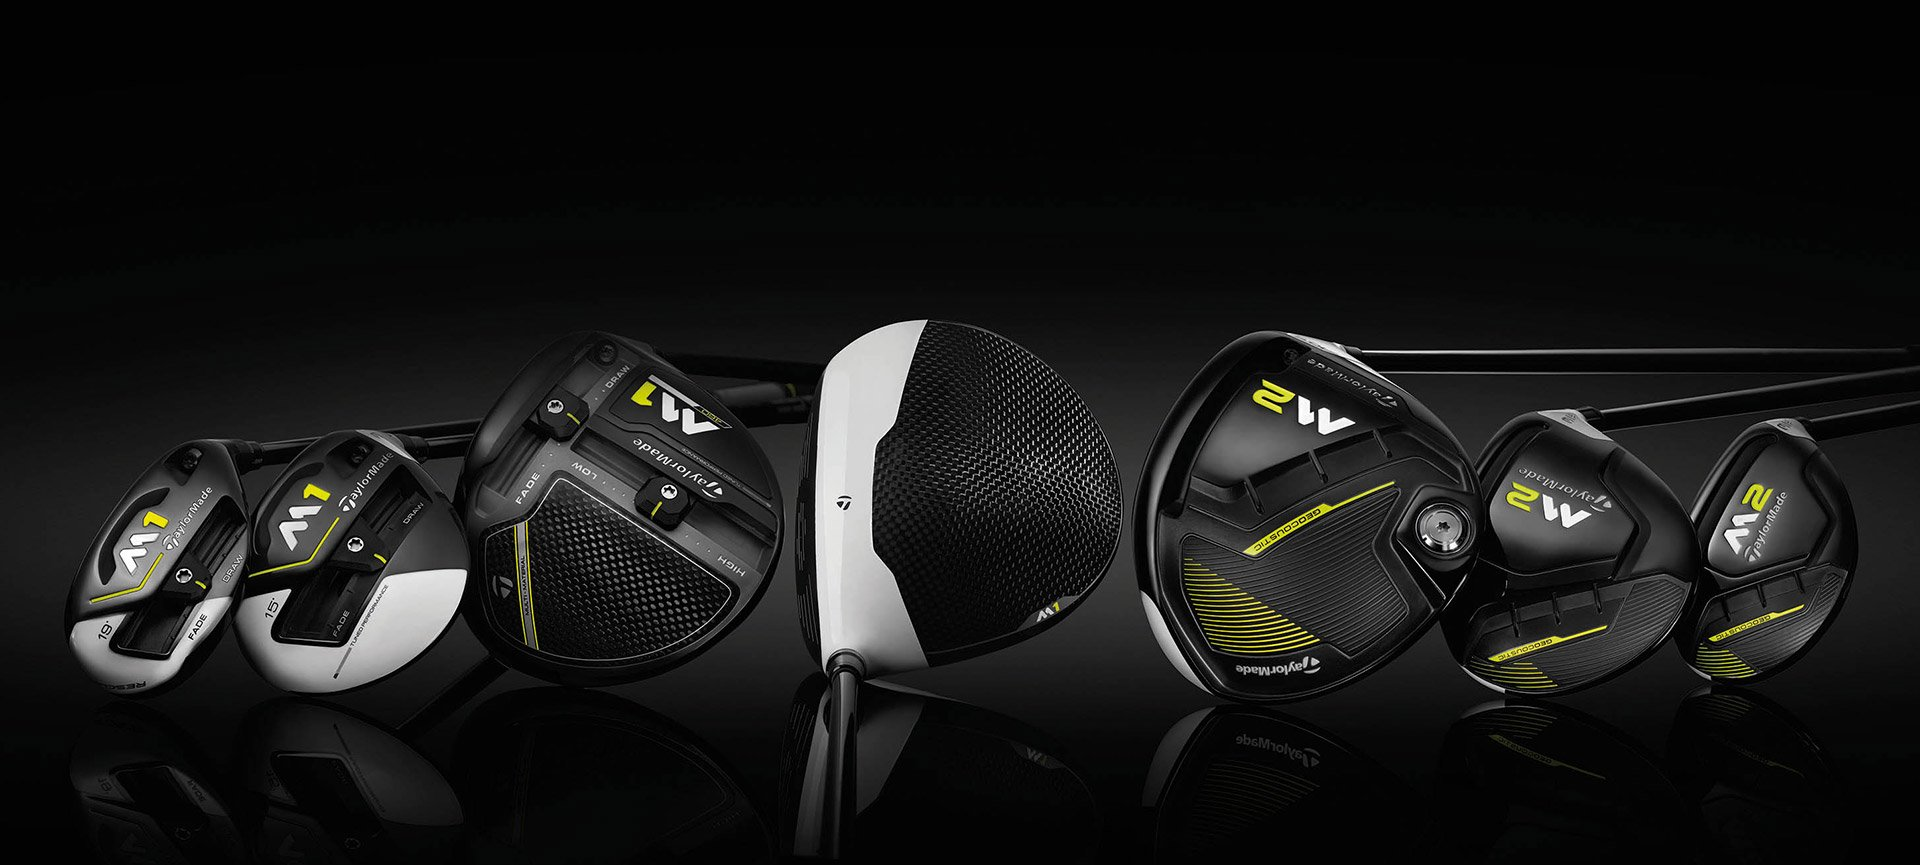 2017 TaylorMade M1 & M2 Drivers